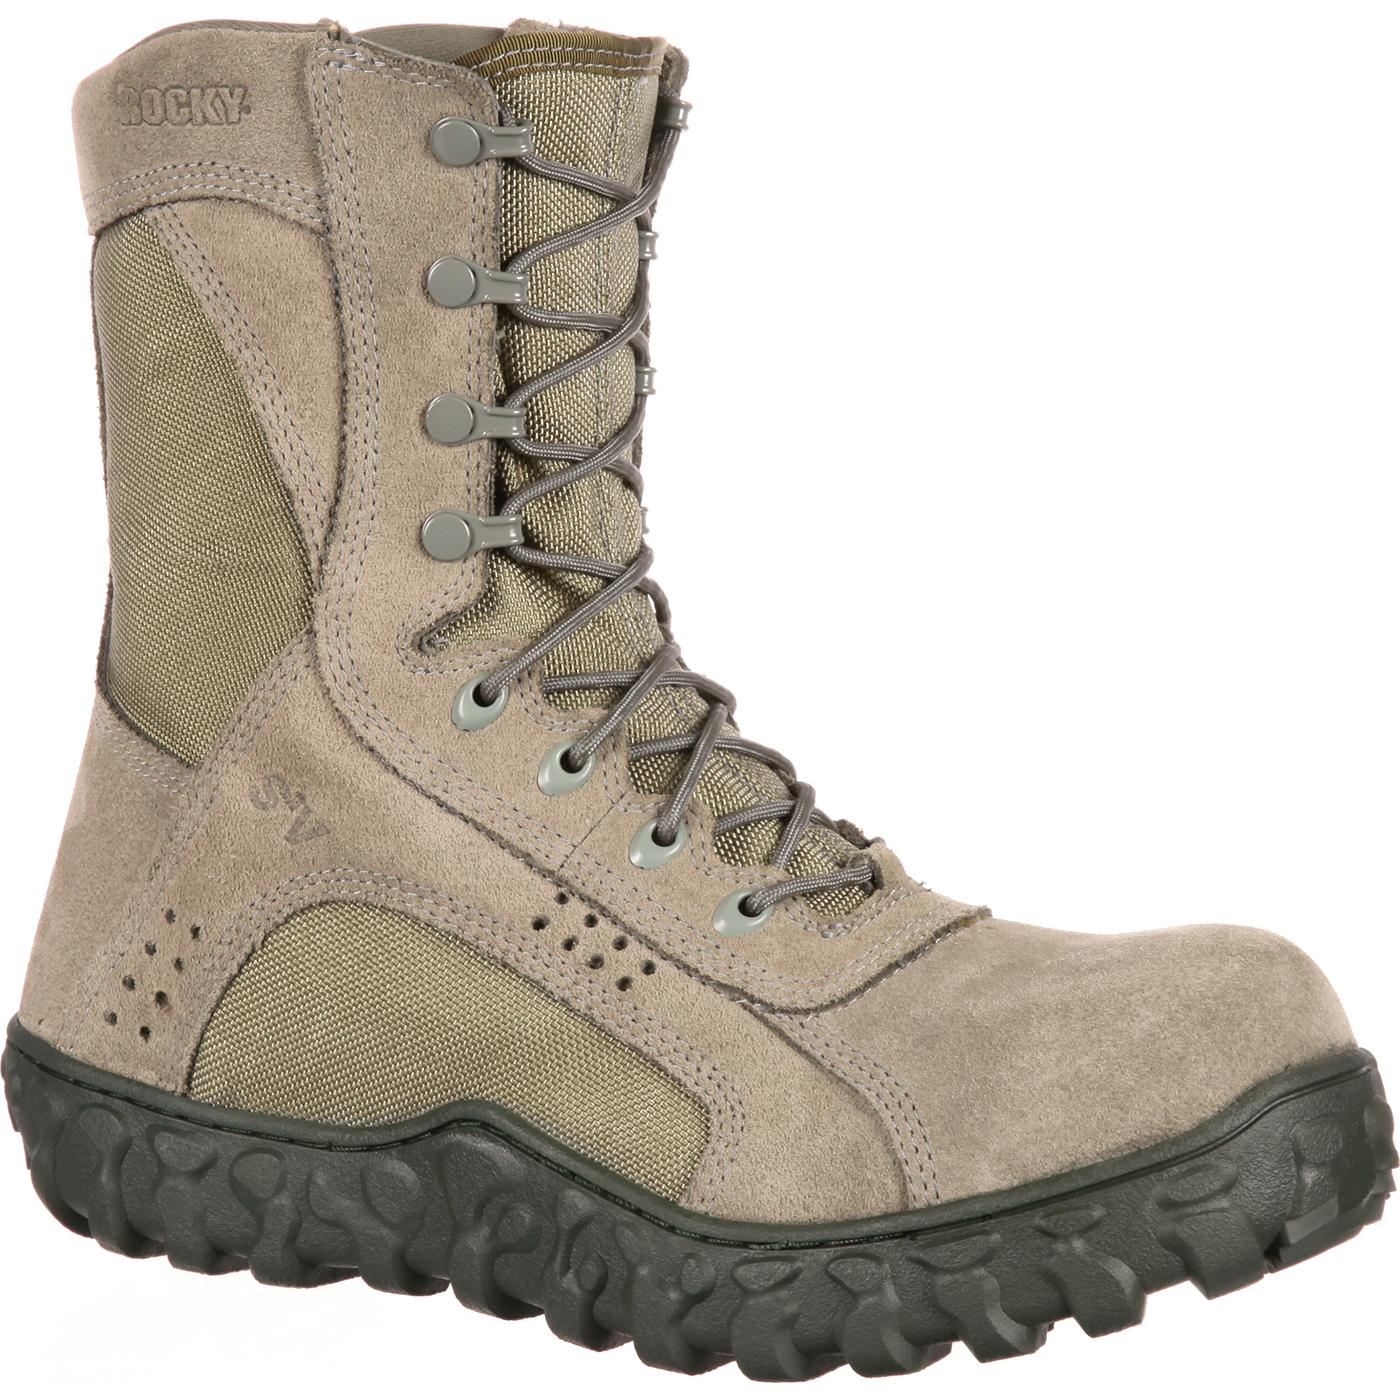 381fc00887a Rocky S2V Composite Toe Tactical Military Boot